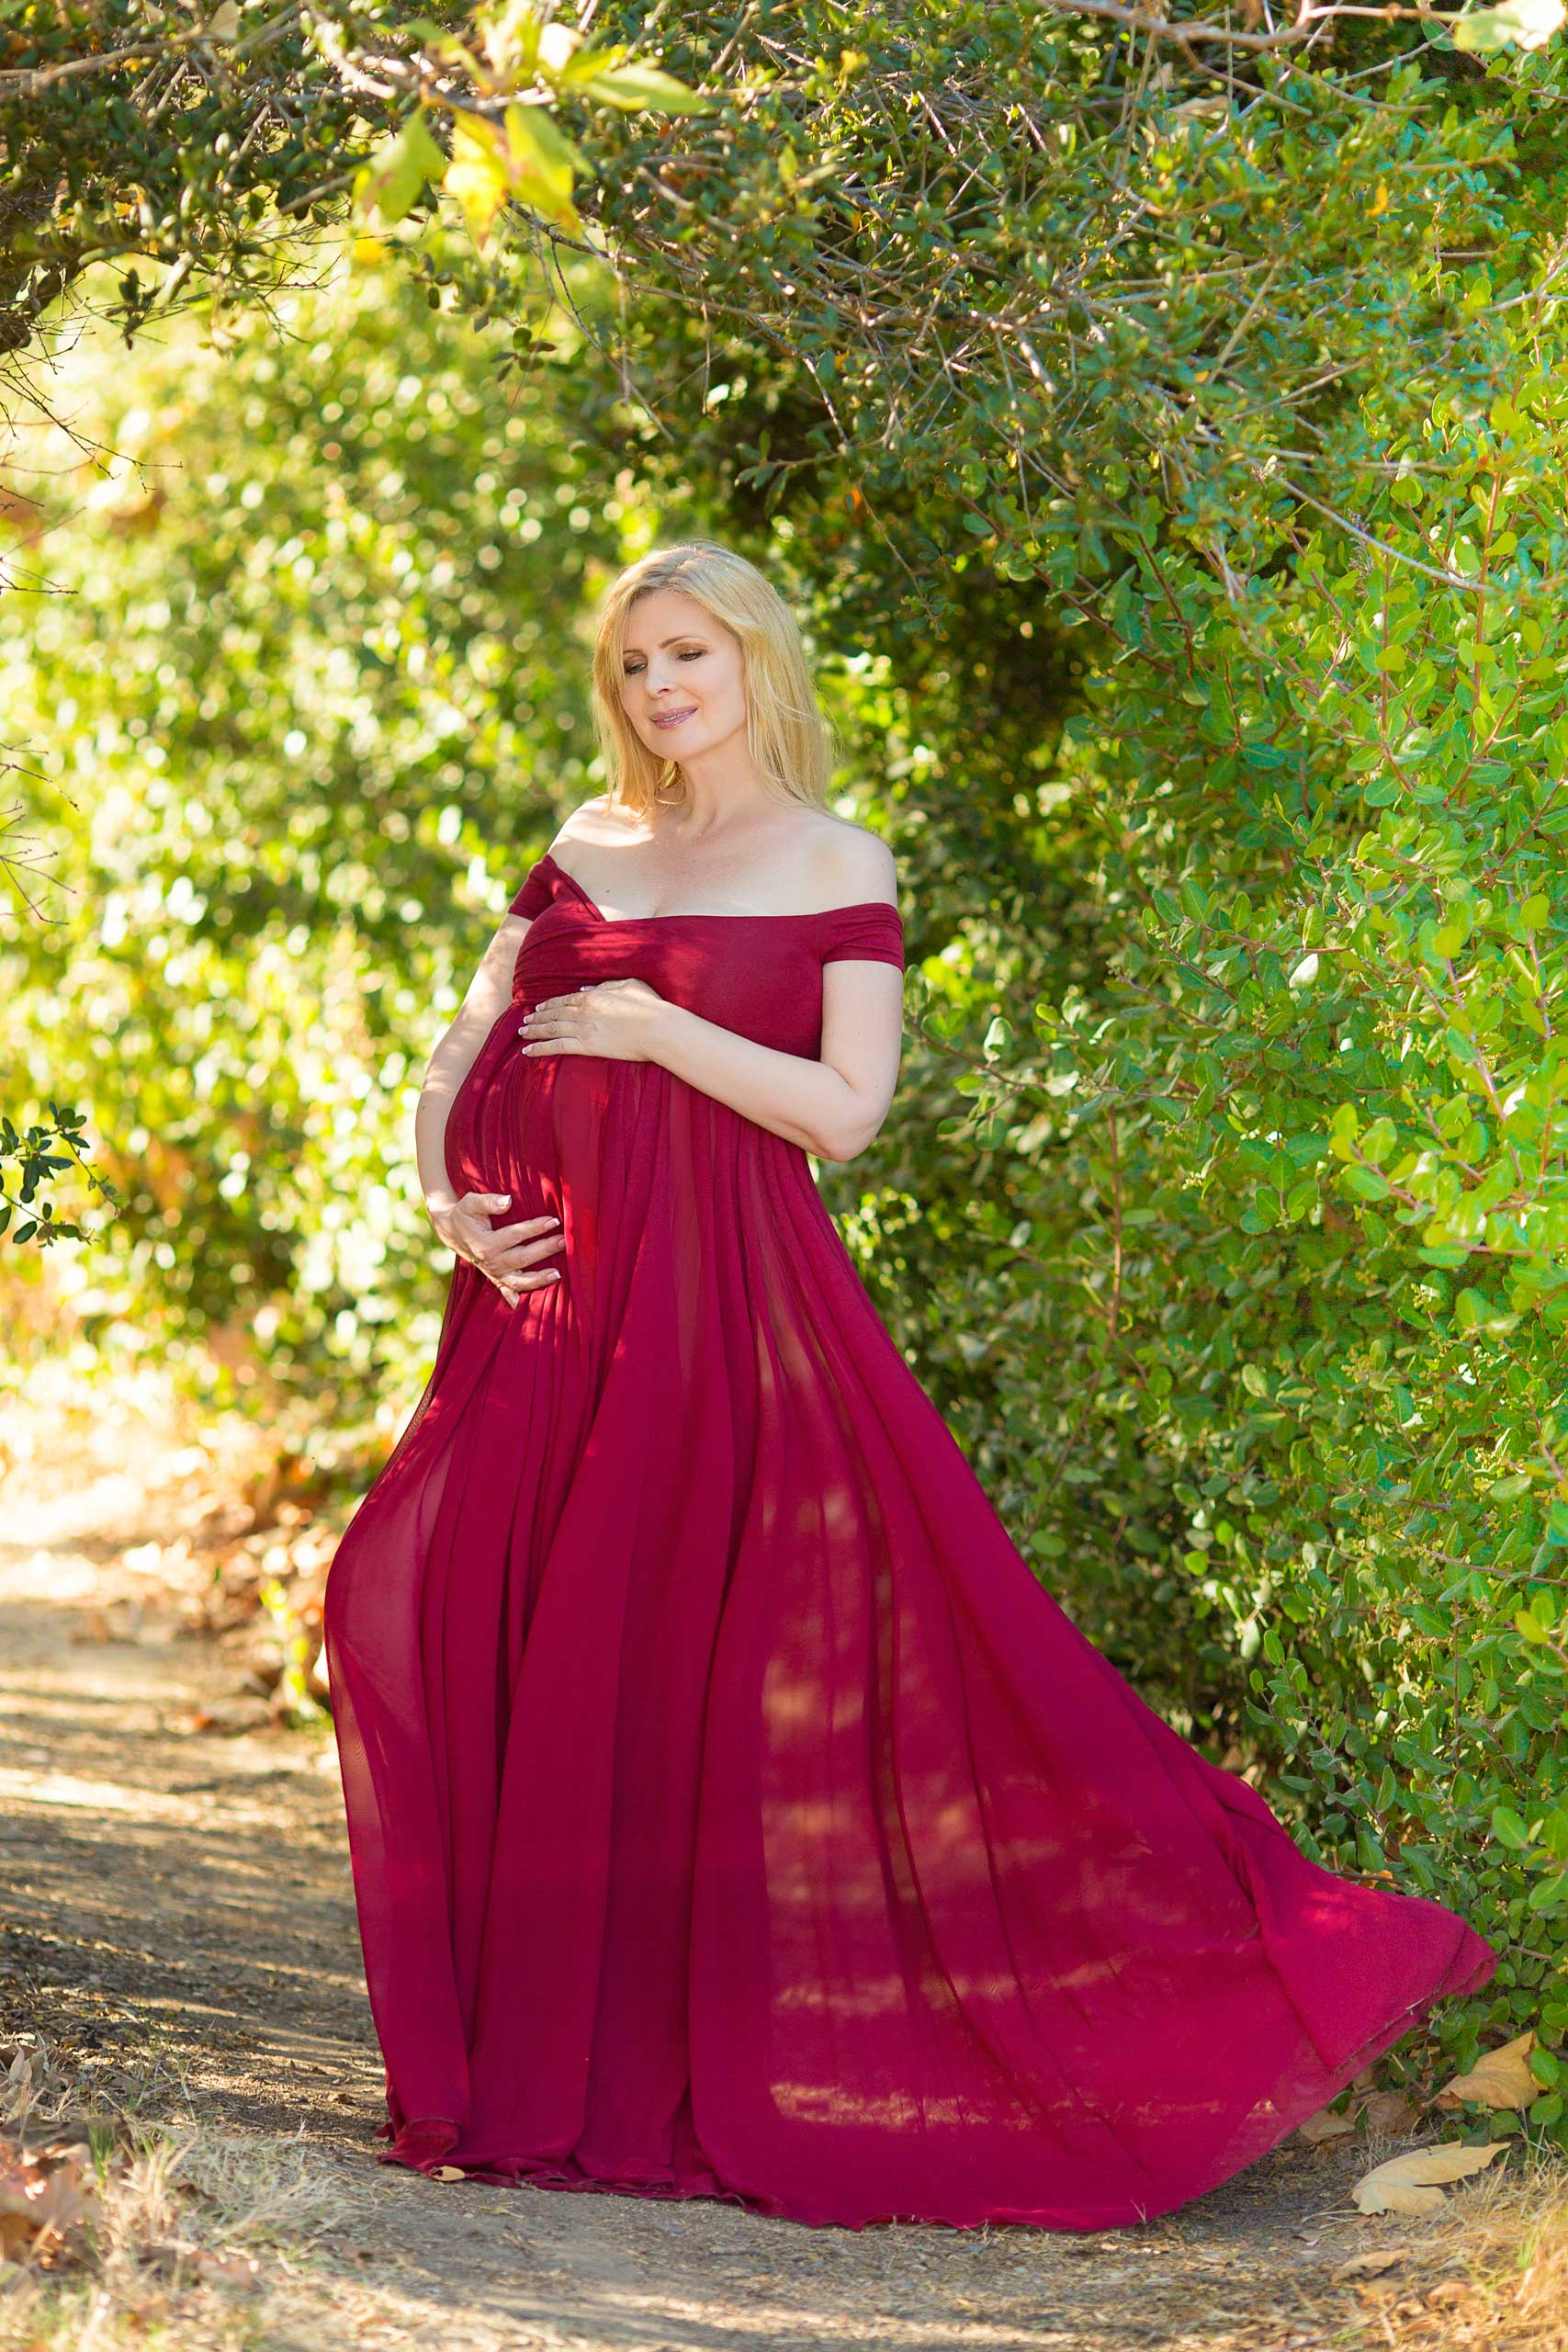 Maternity photos taken by Ramina Magid Photography in Malibu